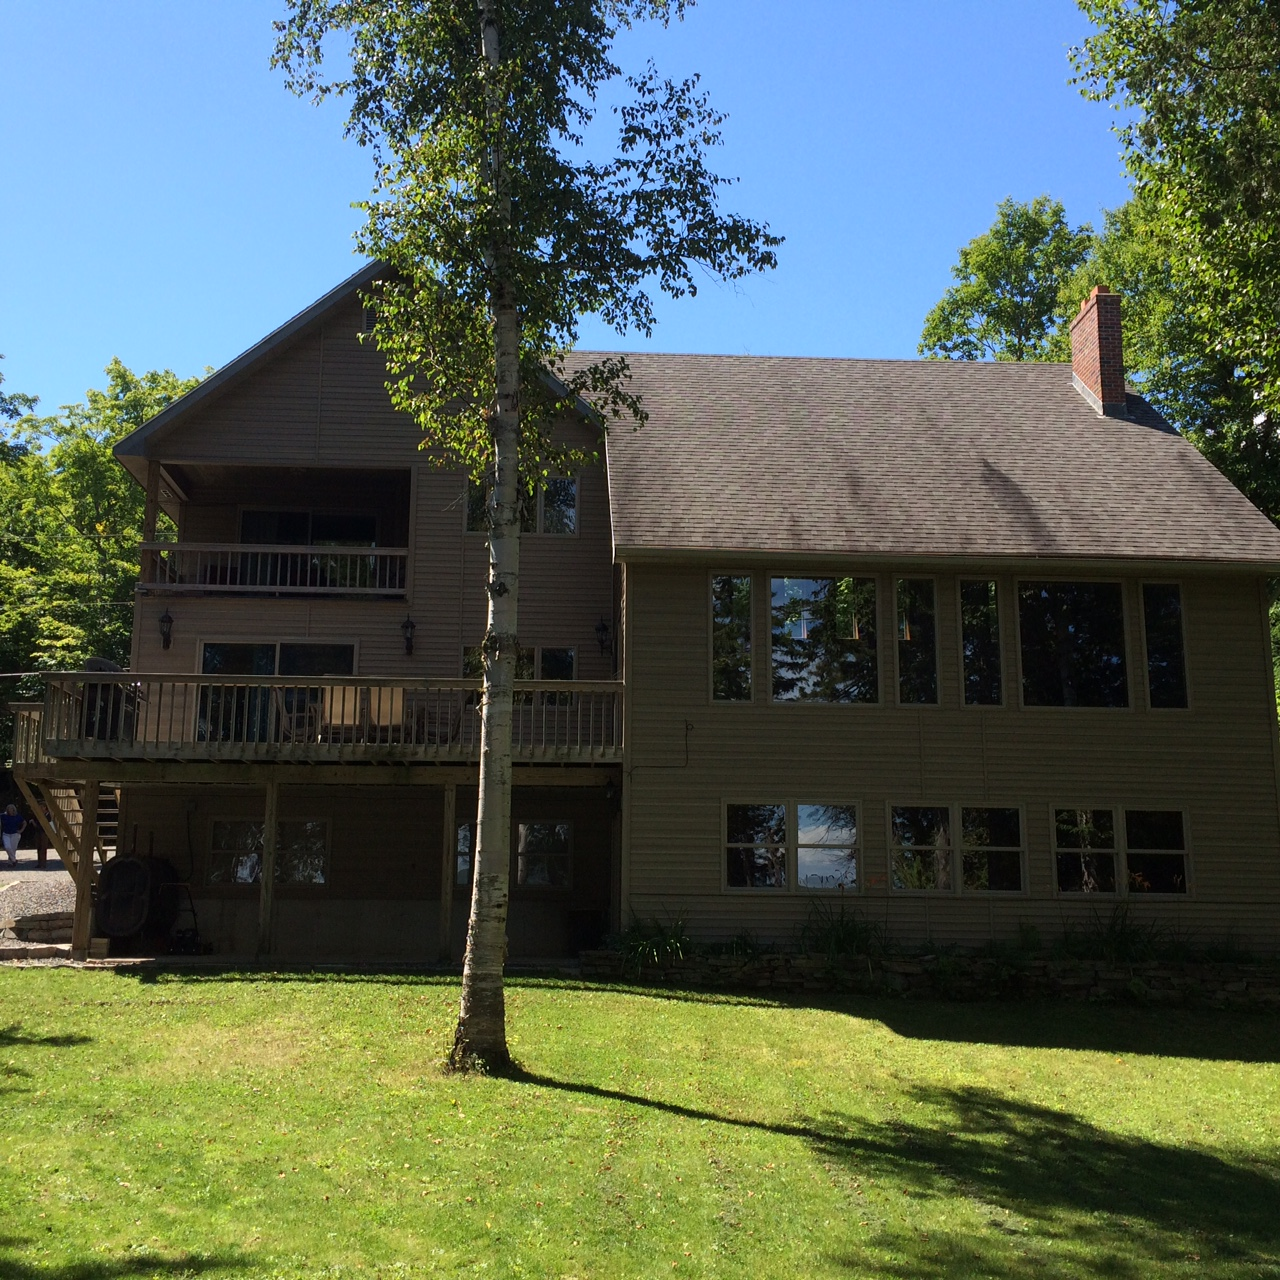 112 North Shore Road, Harford's Point, Maine 04441